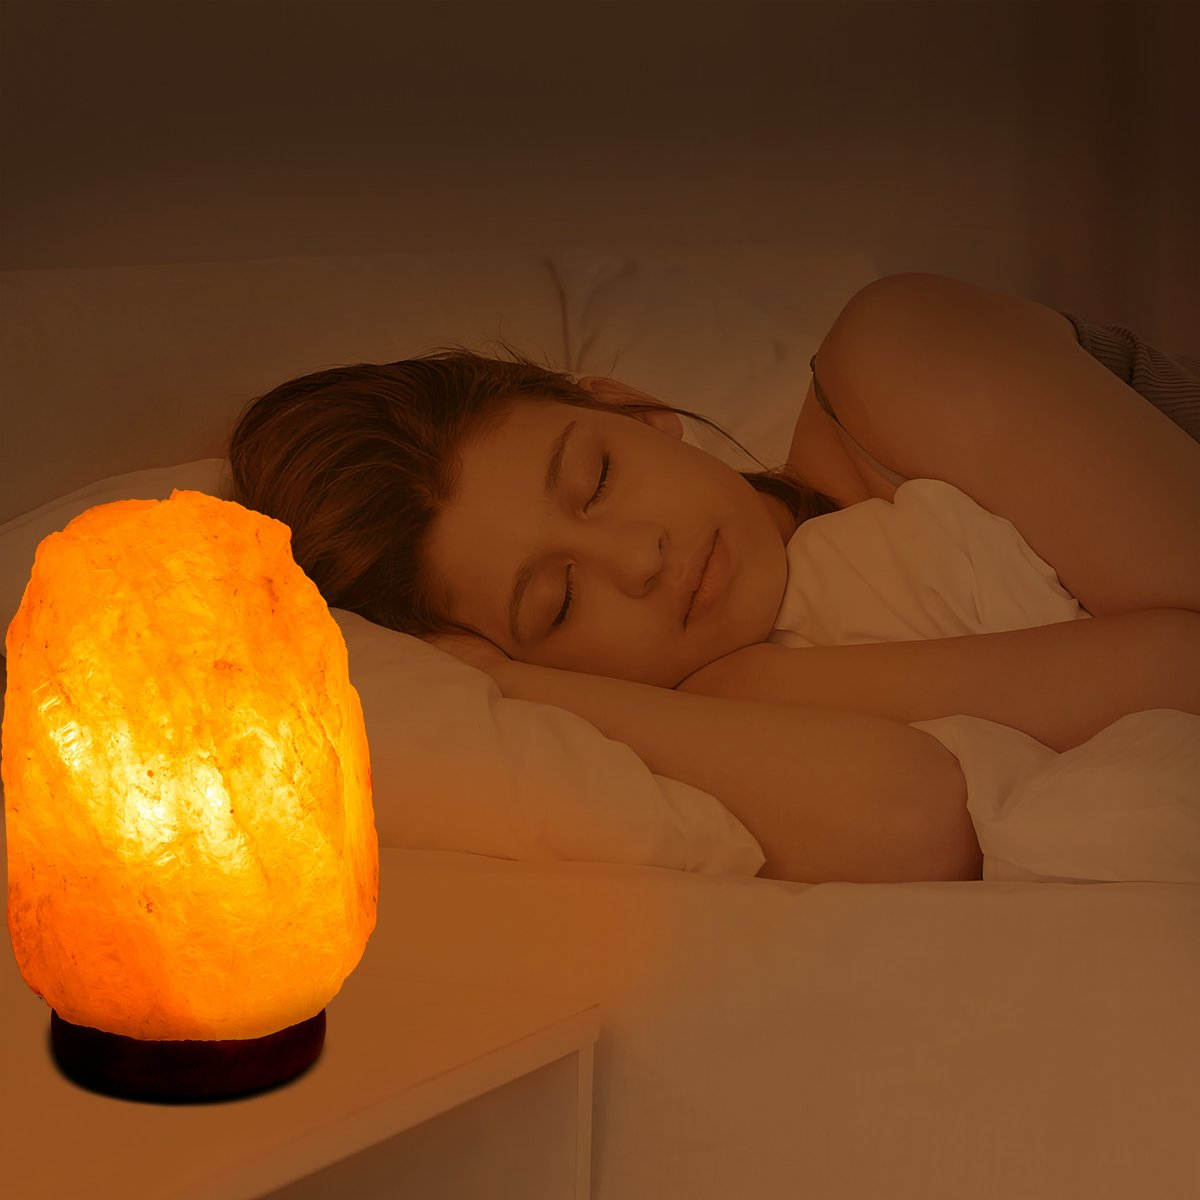 Salt Rock Lamps,Himalayan Salt Lamp,Natural Hand Carved Crystal Salt lamp with 6 Pack 15 Watt E12 Light Bulbs,UL Approval Listed Dimmer Switch by haraqi (Image #5)